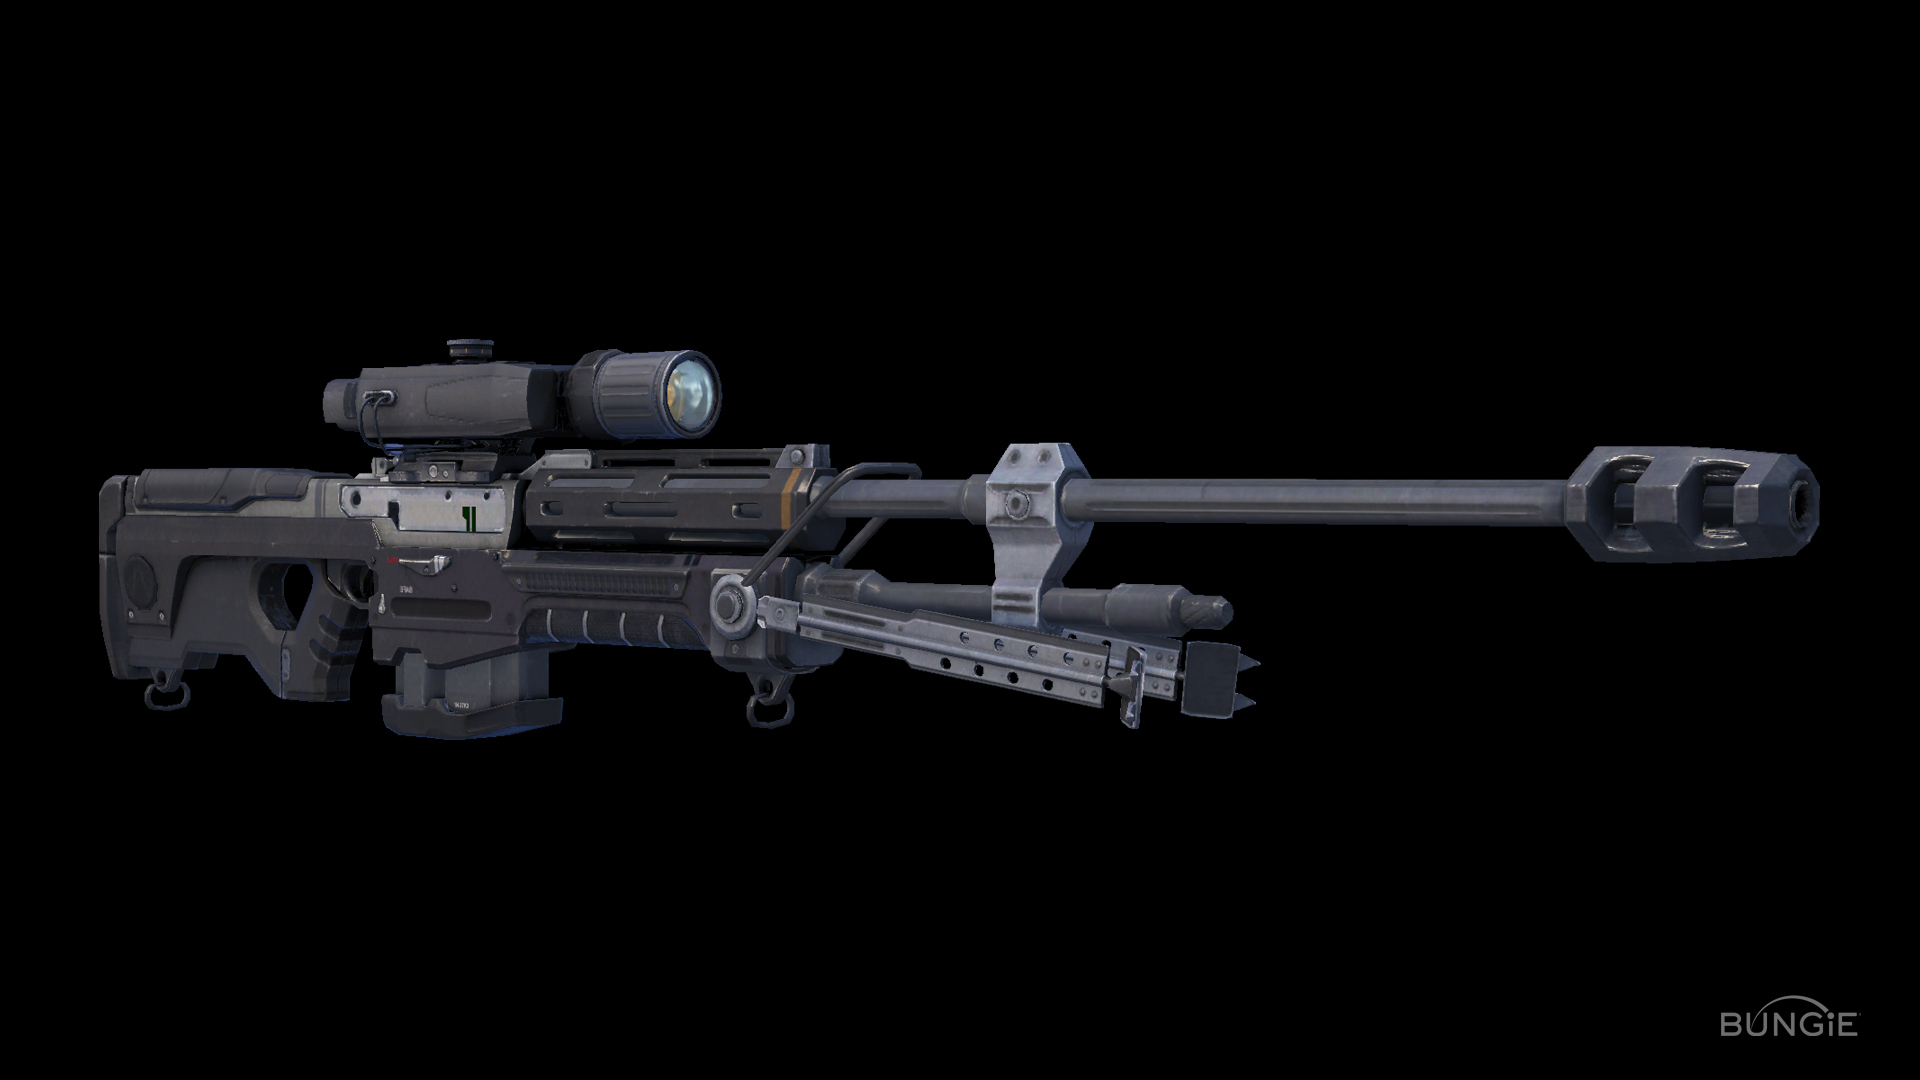 Sniper Rifle wallpaper   ForWallpapercom 1920x1080